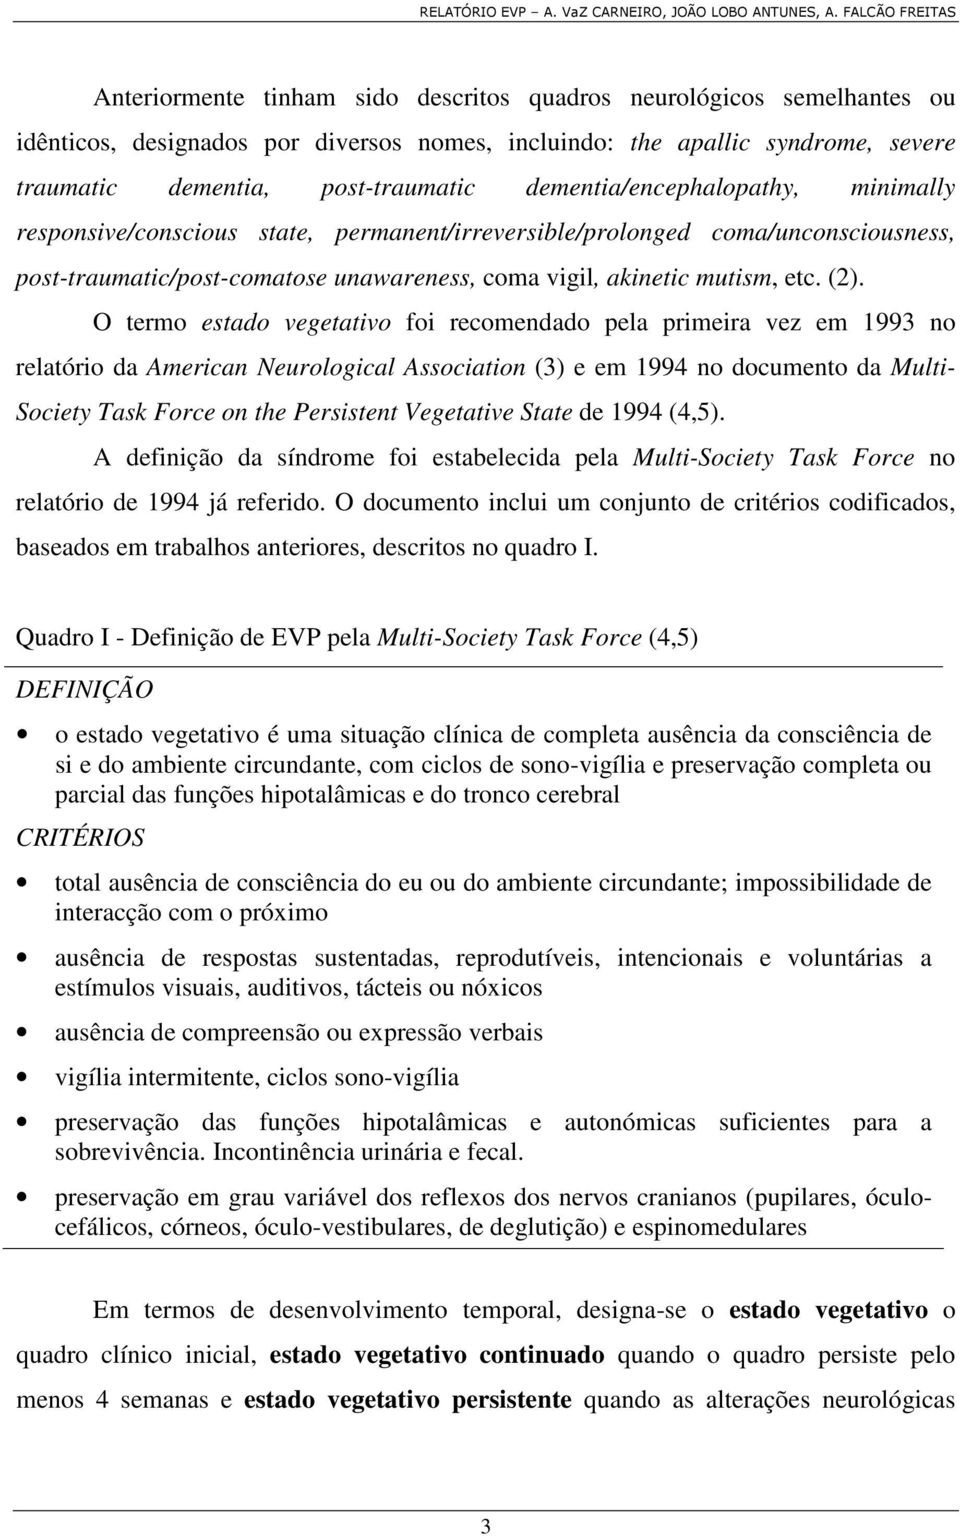 O termo estado vegetativo foi recomendado pela primeira vez em 1993 no relatório da American Neurological Association (3) e em 1994 no documento da Multi- Society Task Force on the Persistent